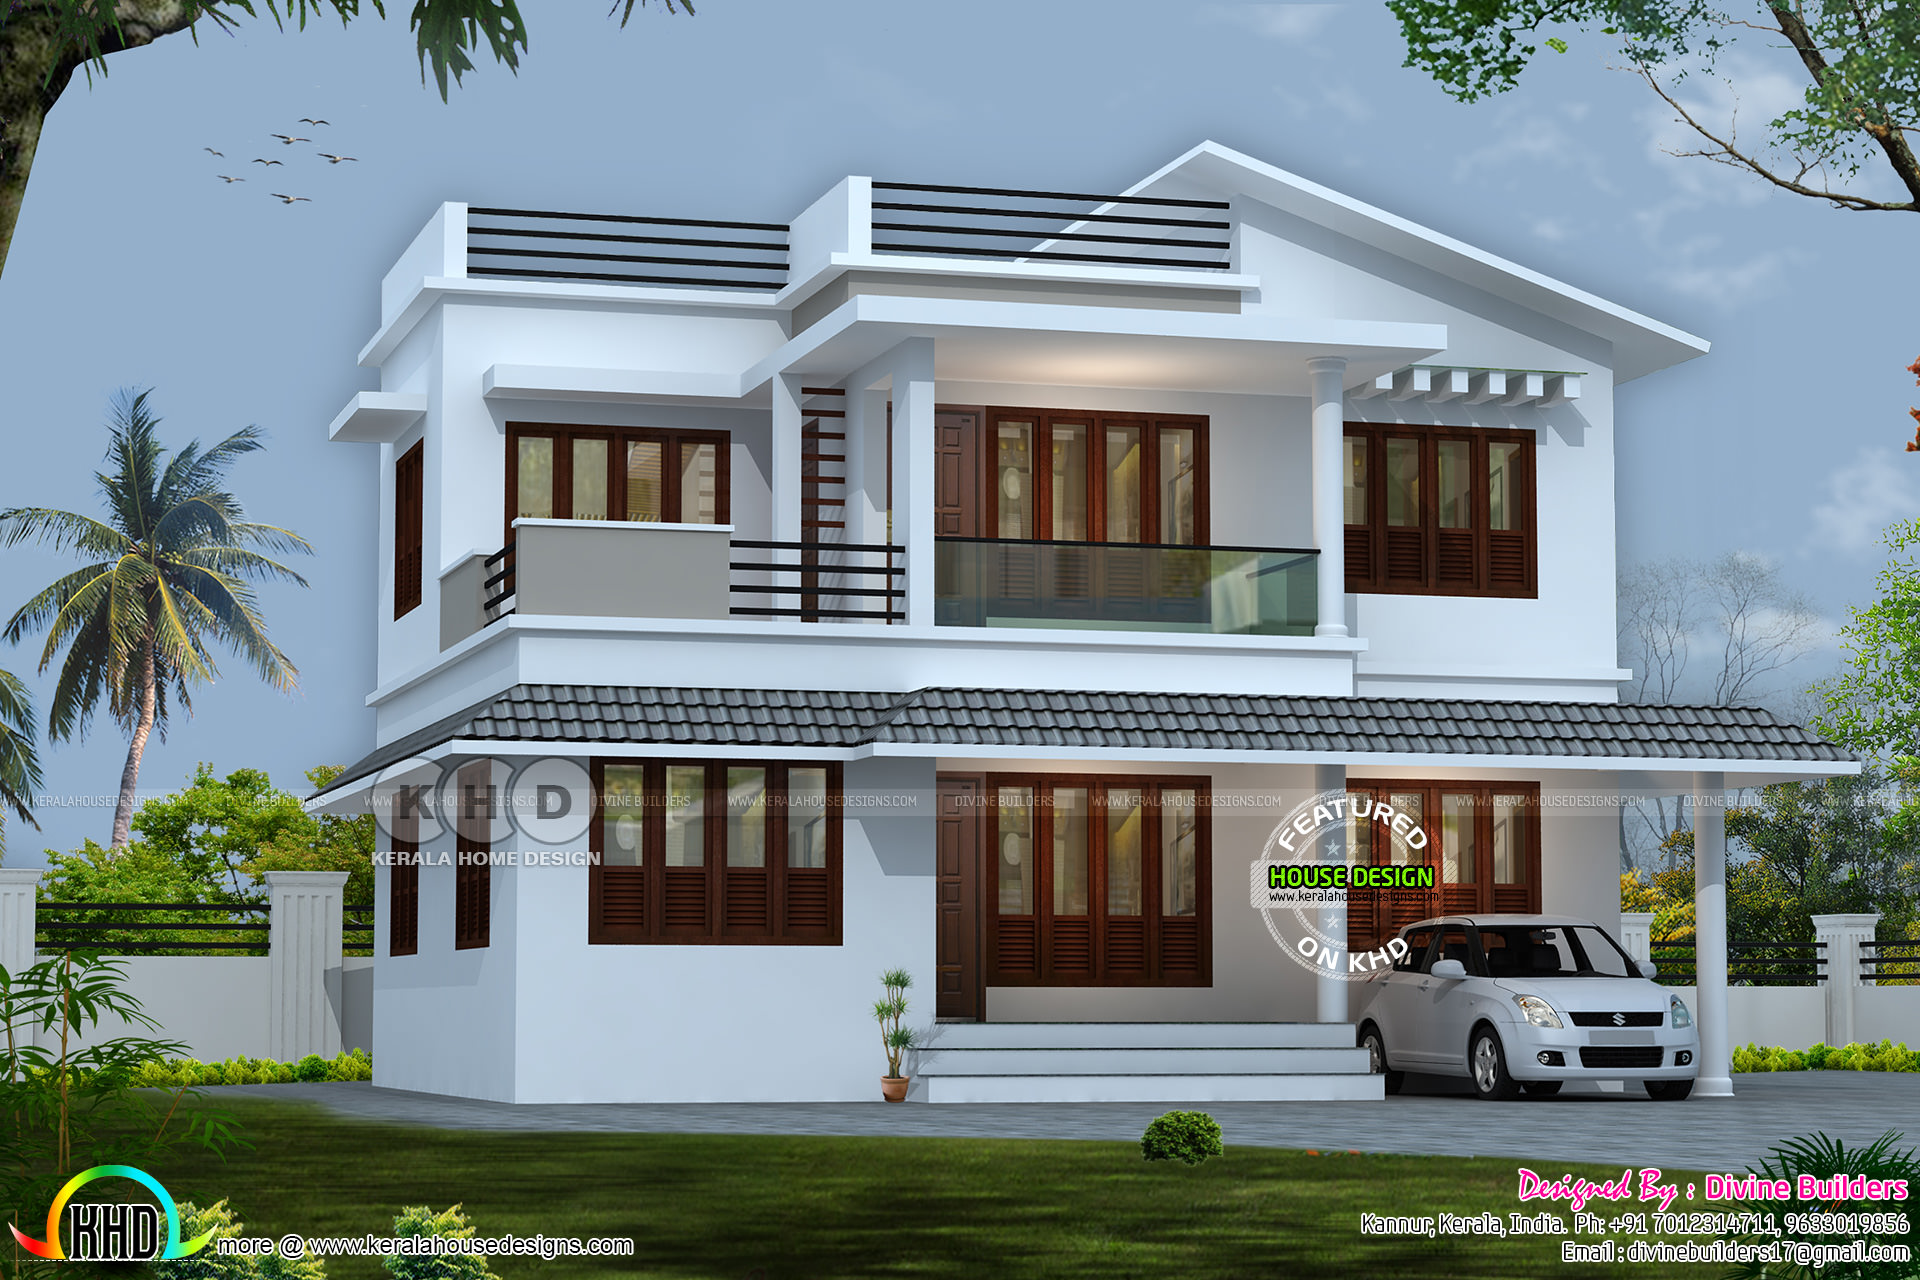 5 bhk modern flat roof house in an area of 2070 sq ft